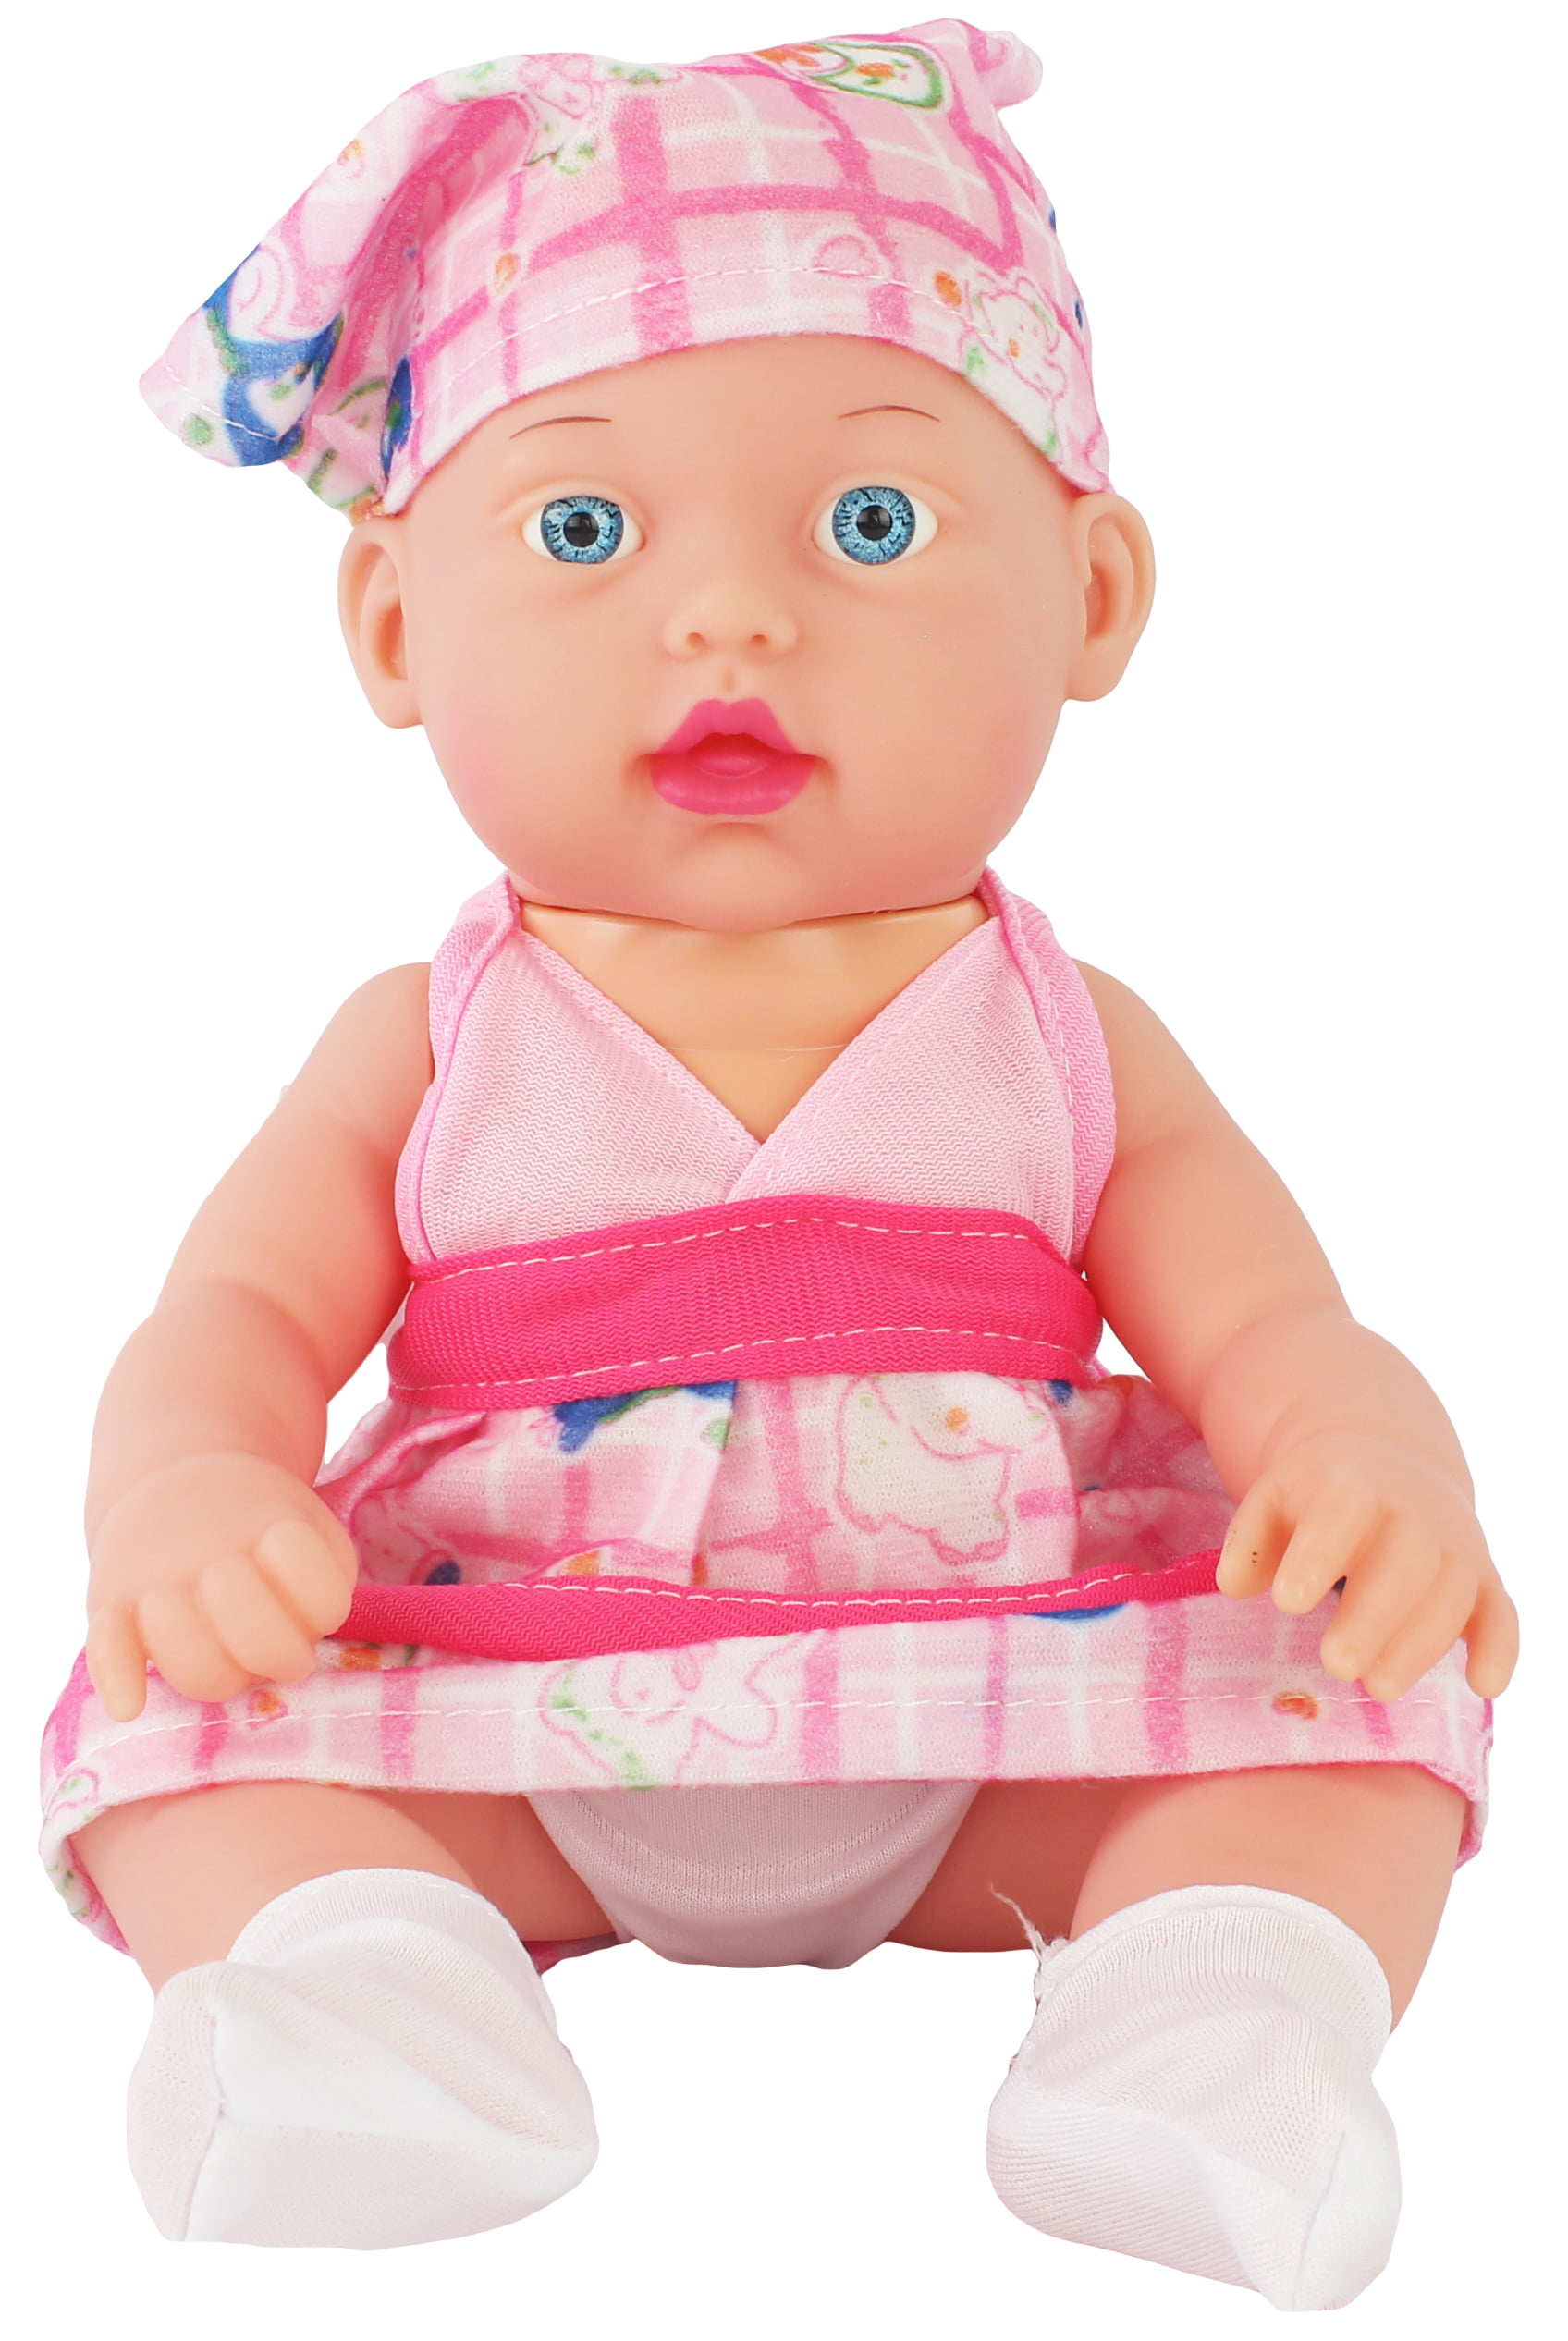 11 Toy Battery Operated Pretend Play Baby Doll Cute Pink Outfit Toy Girls Walmart Com Walmart Com